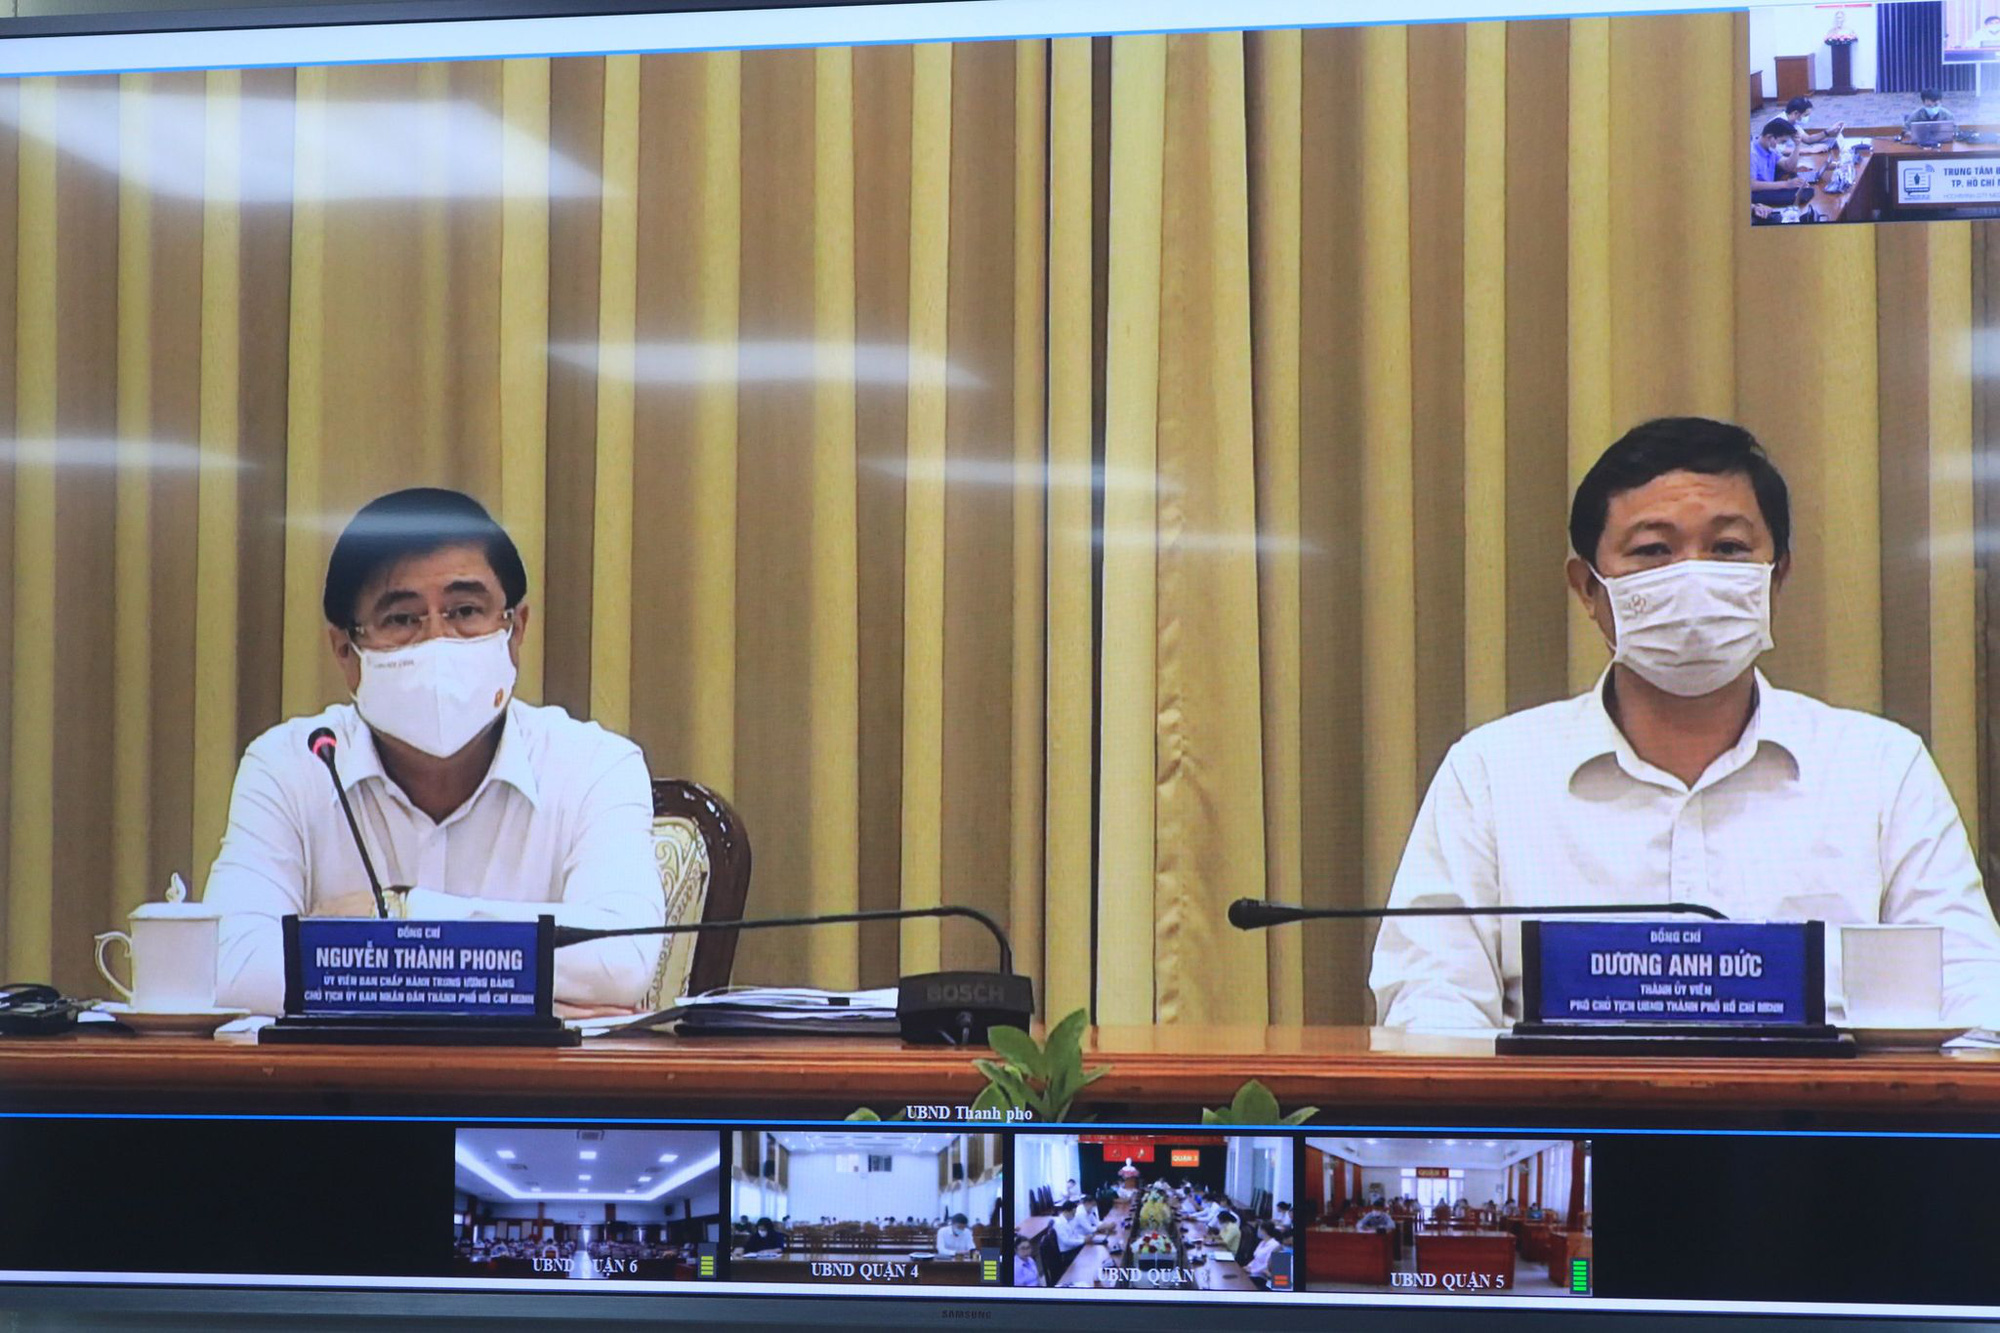 Eateries mustn't serve over 30 customers at a time: Ho Chi Minh City chairman